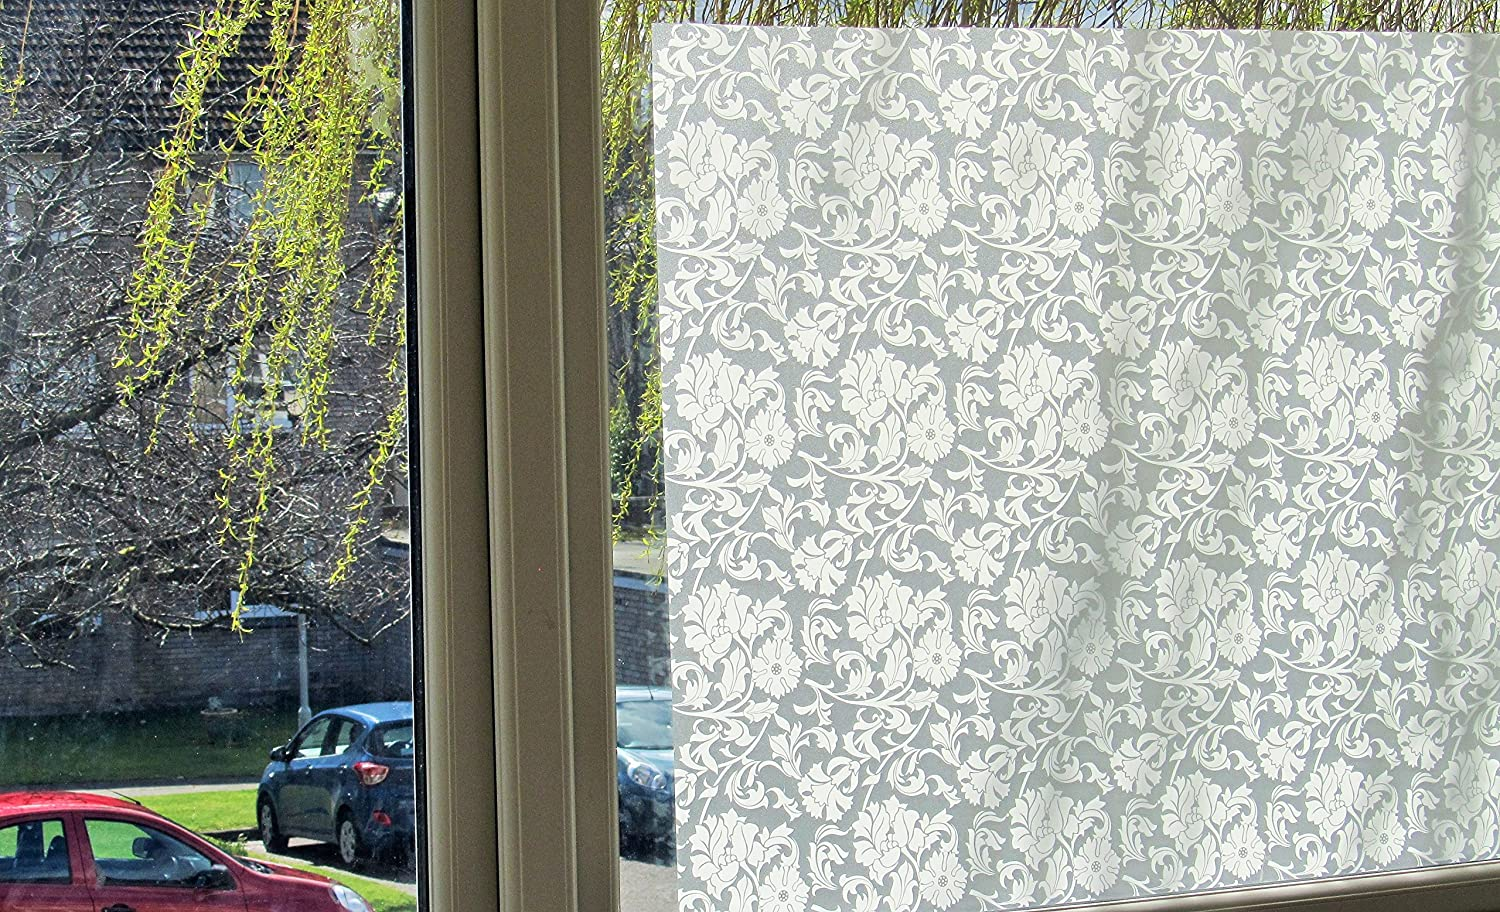 REUSABLE, Static Frosted Decorative Window Vinyl Film, Stained Glass Effect (1m x 90cm) Frosted White Flowers